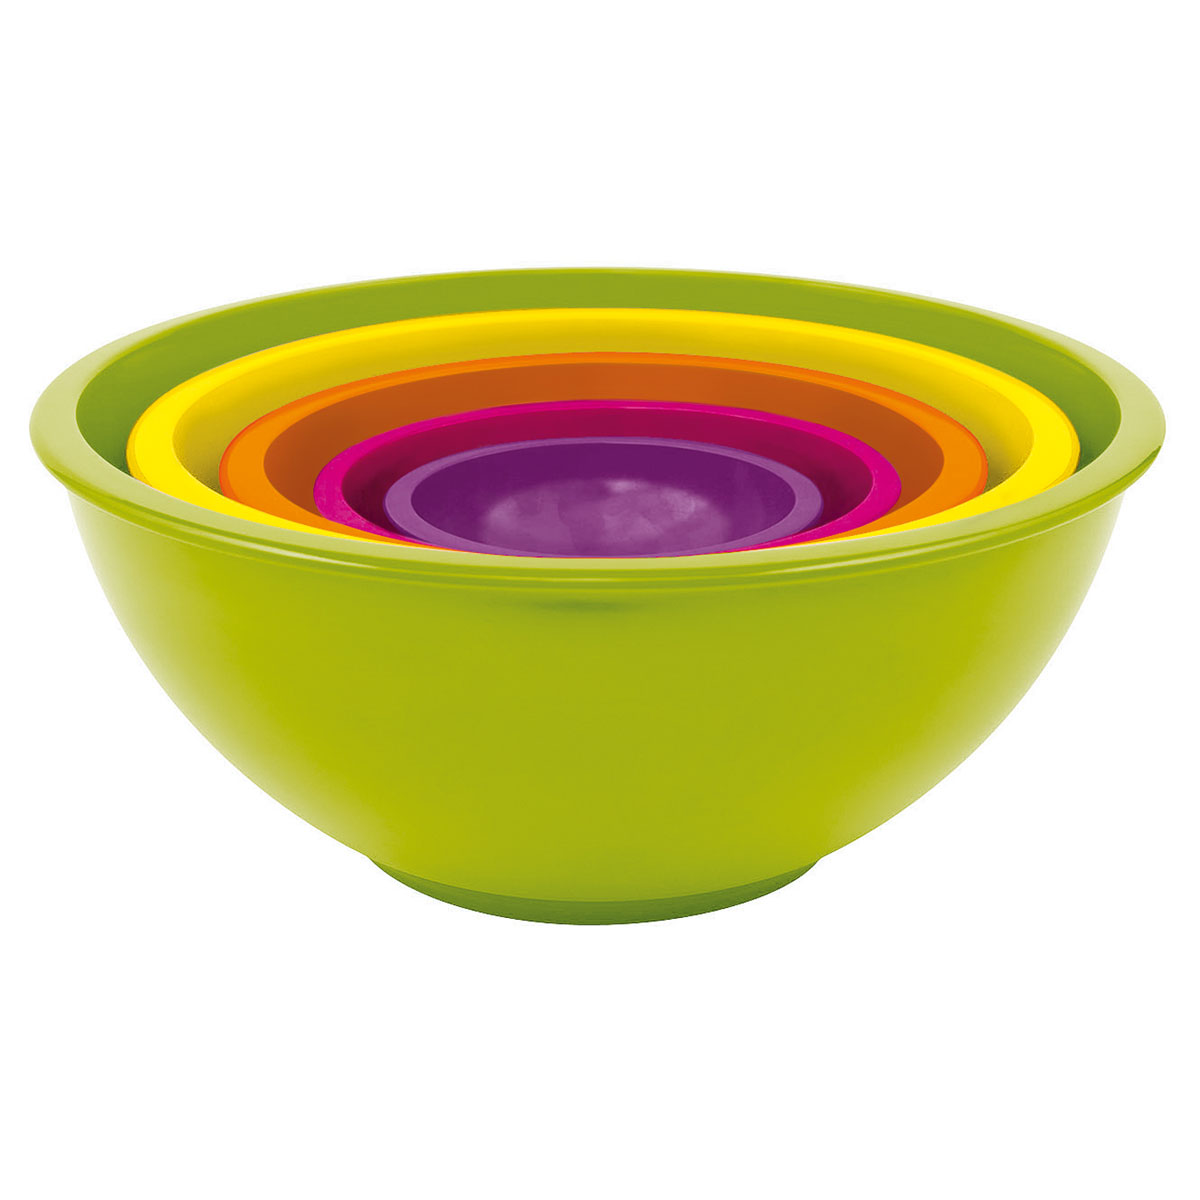 Zak Design Bowl Bowls Gift Box Newformsdesign Gifts